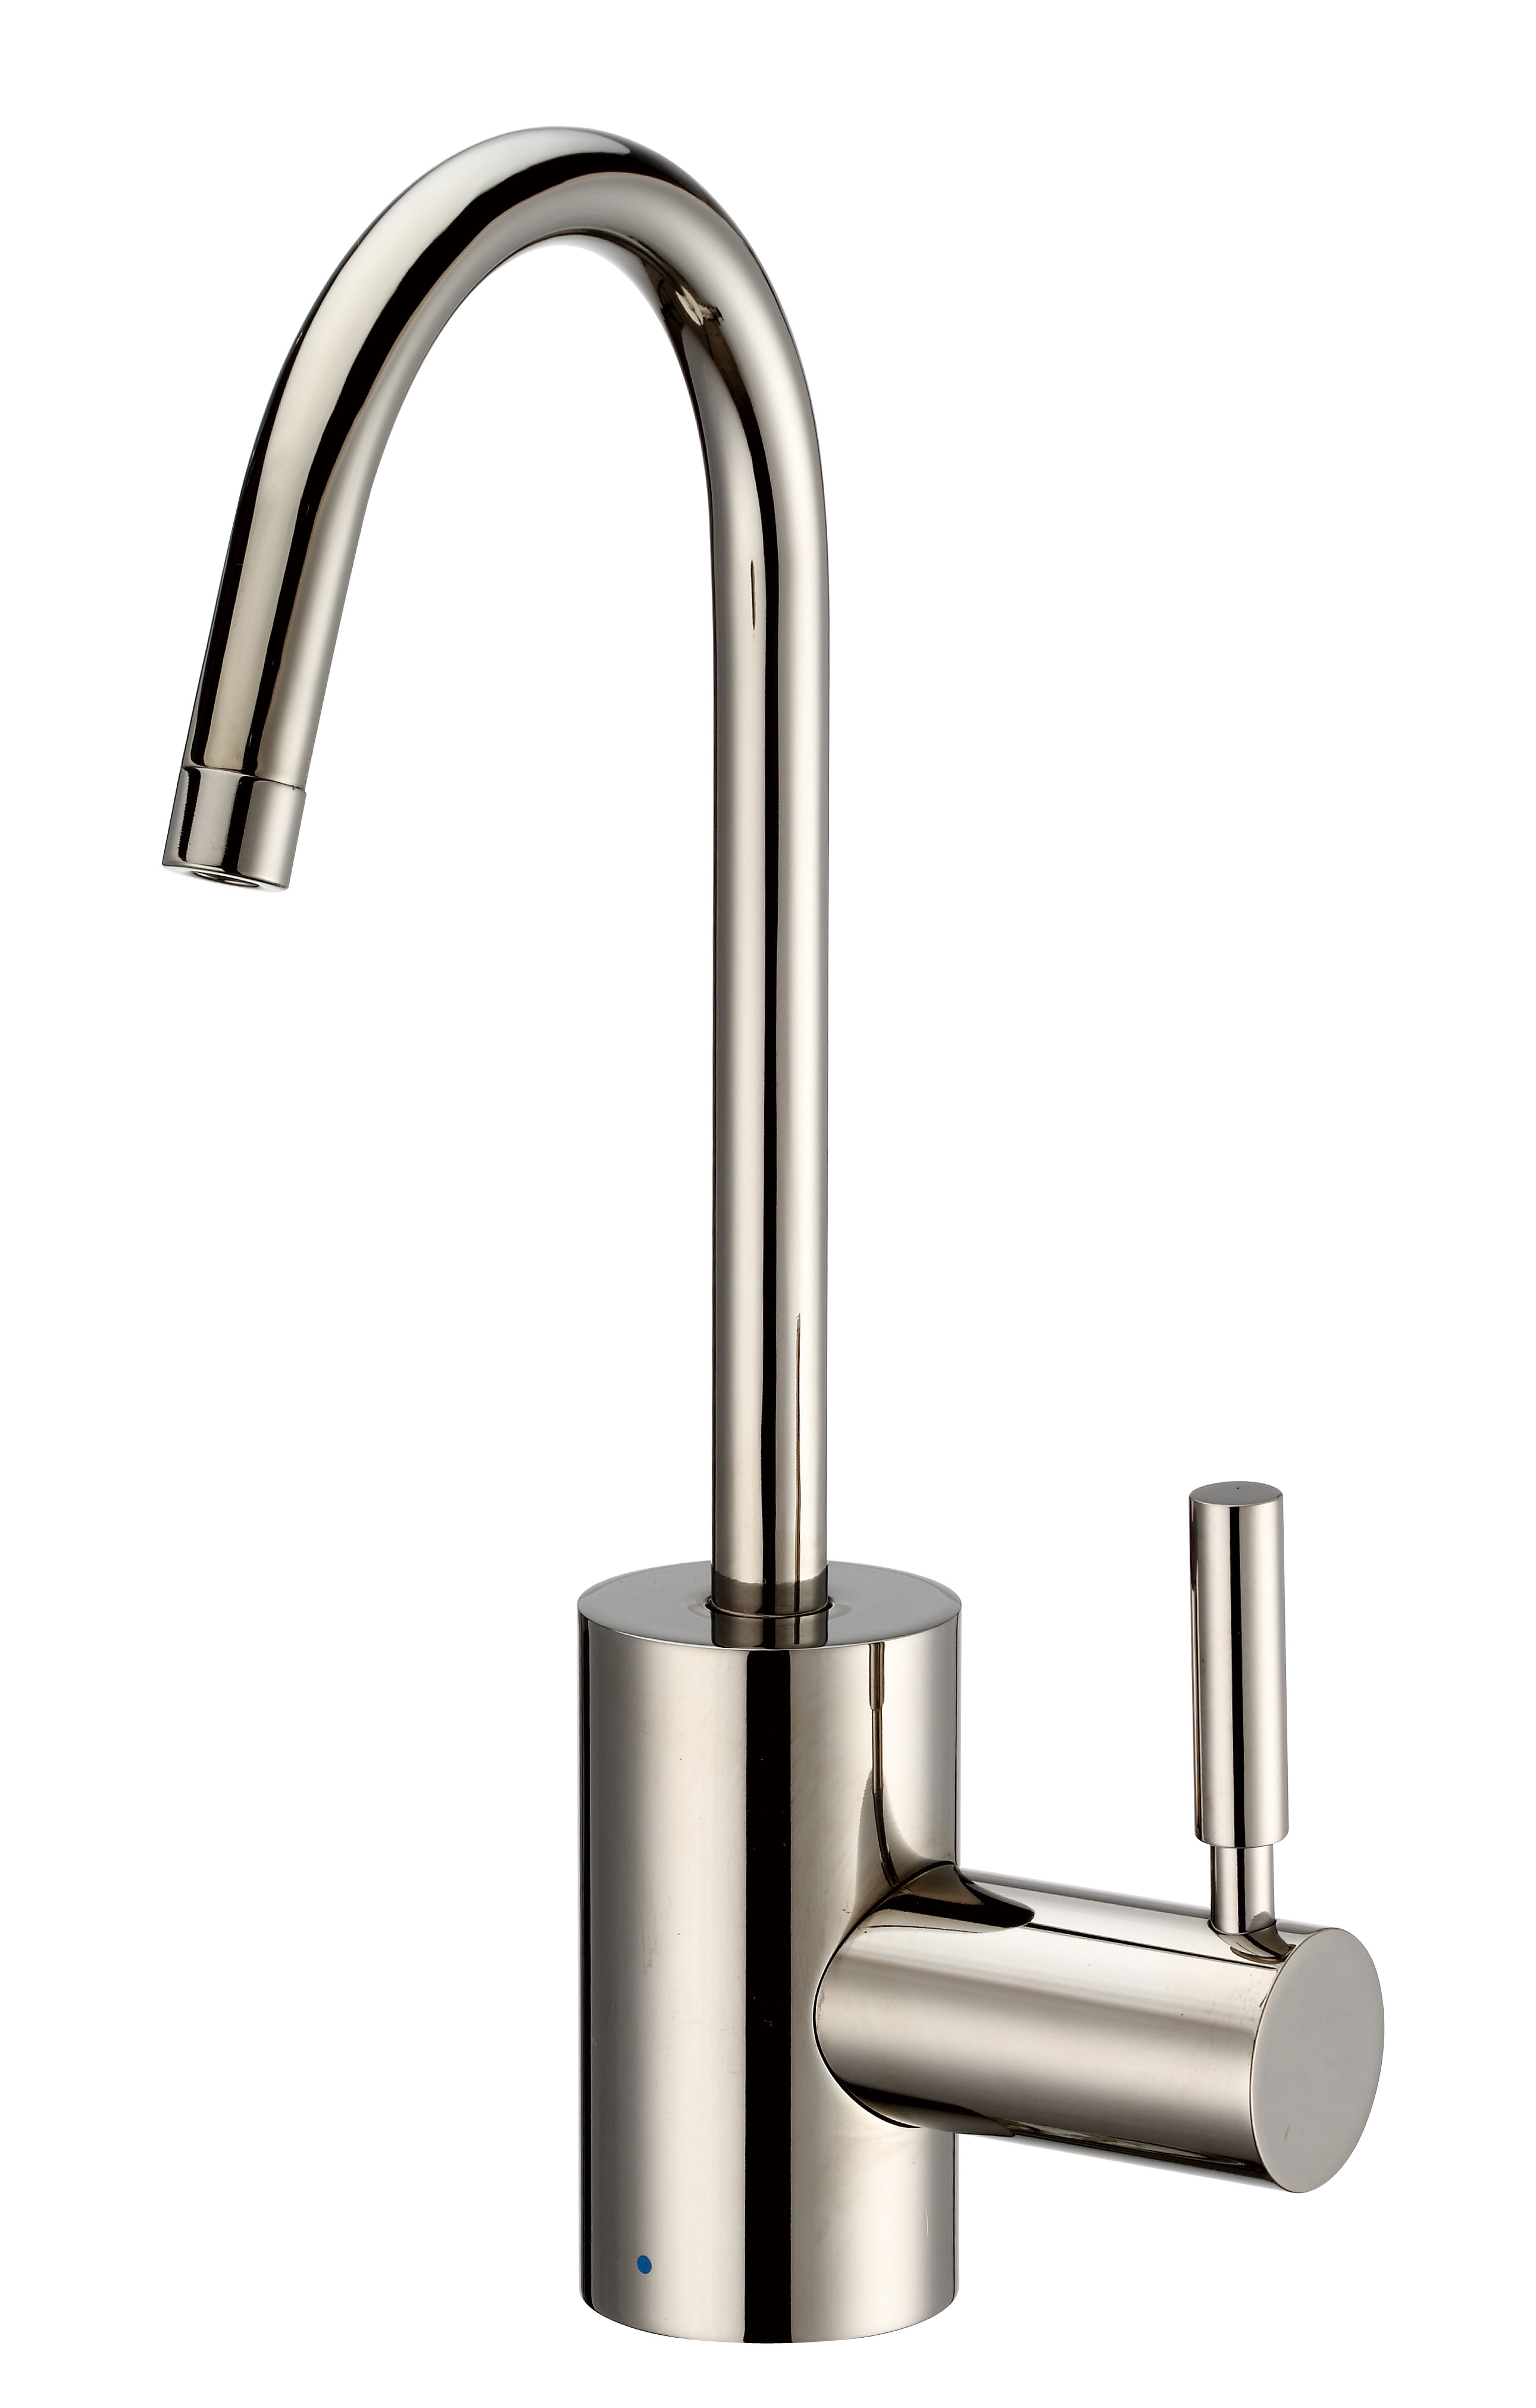 Whitehaus WHFH-C1010 Point of Use Cold Water Faucet with ...